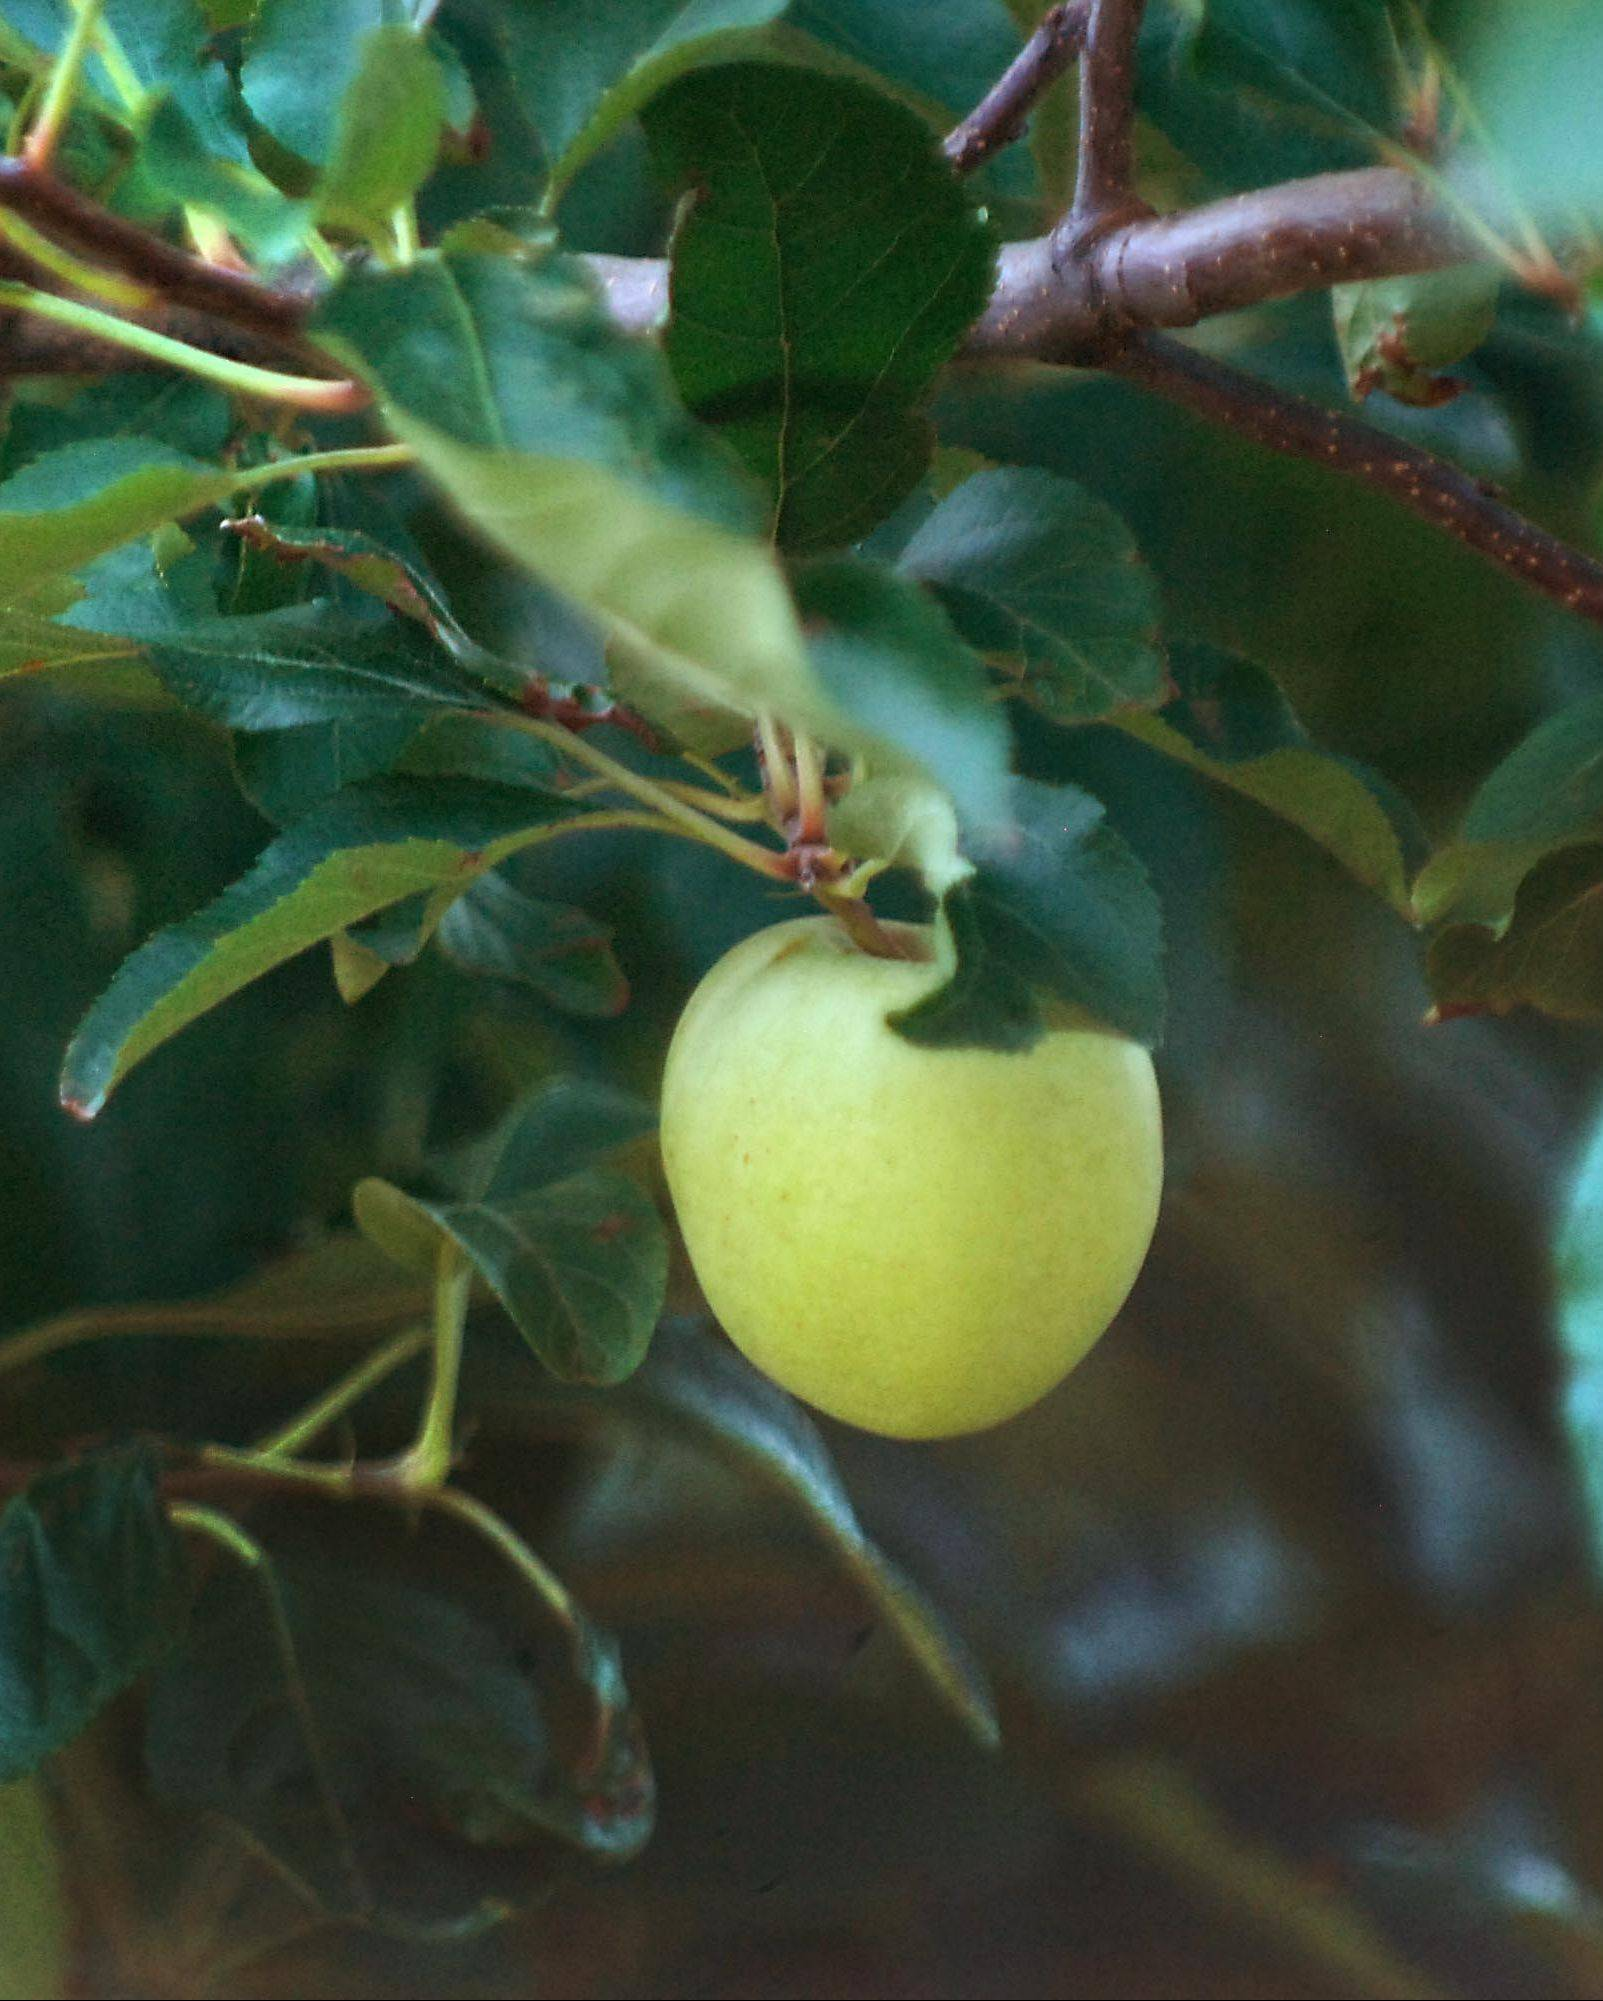 Gala apples have been badly affected by the drought at Royal Oak Fruit Farm in Harvard.